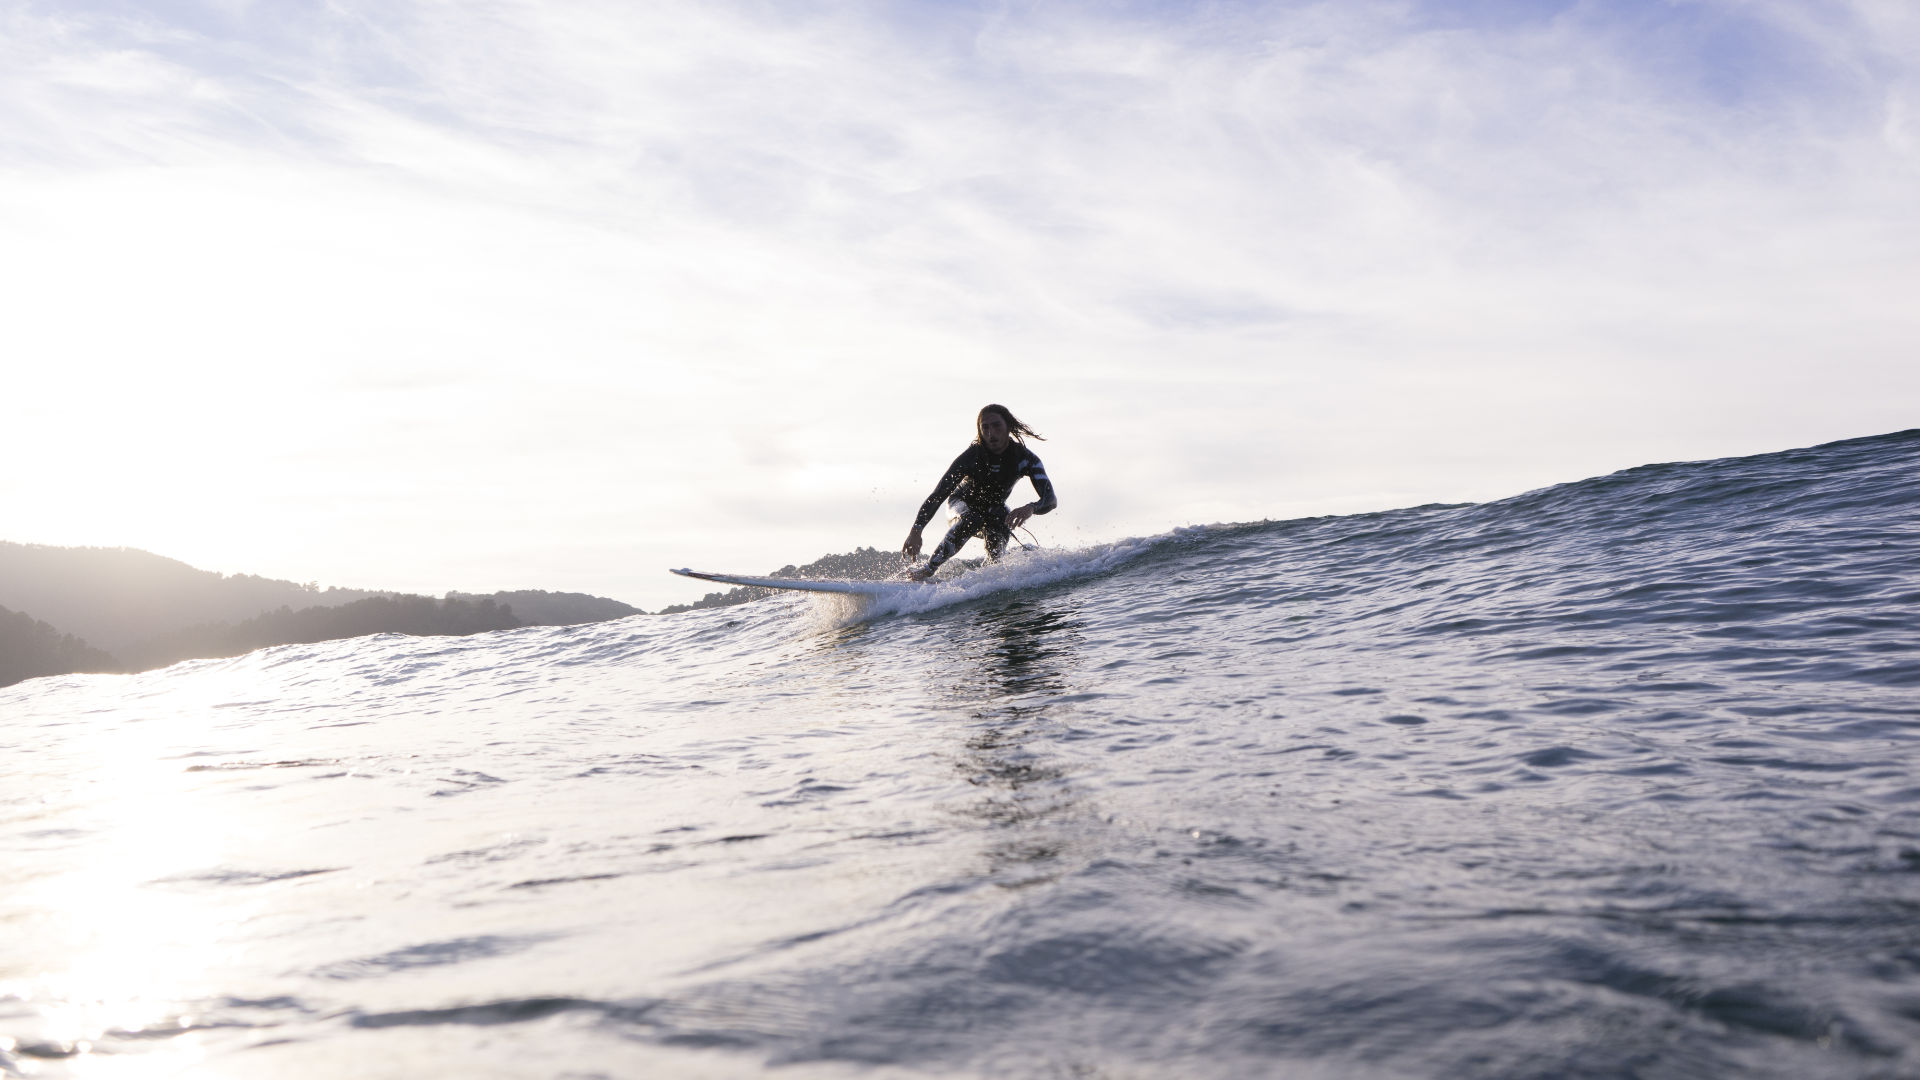 Surfer riding in cold water in a full wetsuit